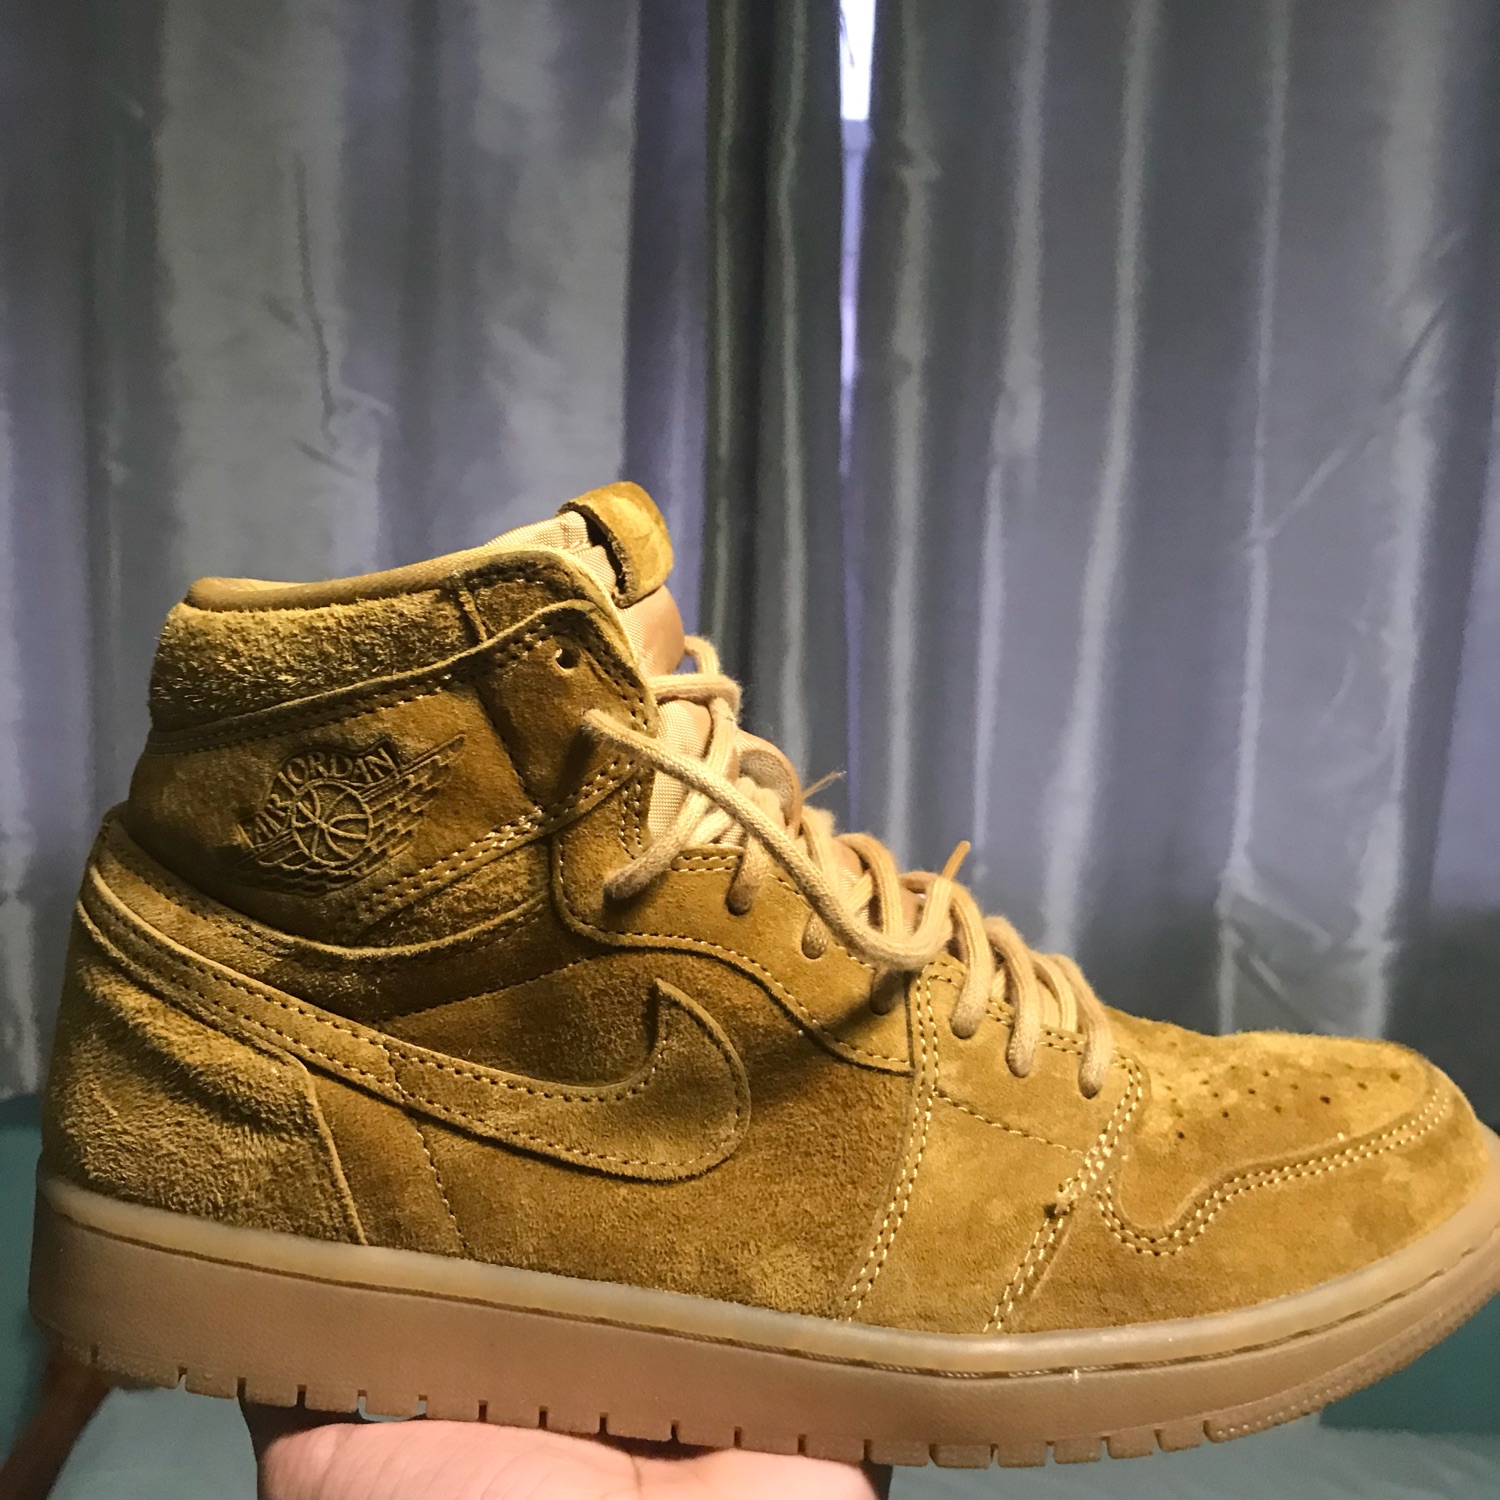 huge inventory on feet shots of run shoes Nike Air Jordan 1 Holiday Pack Wheat